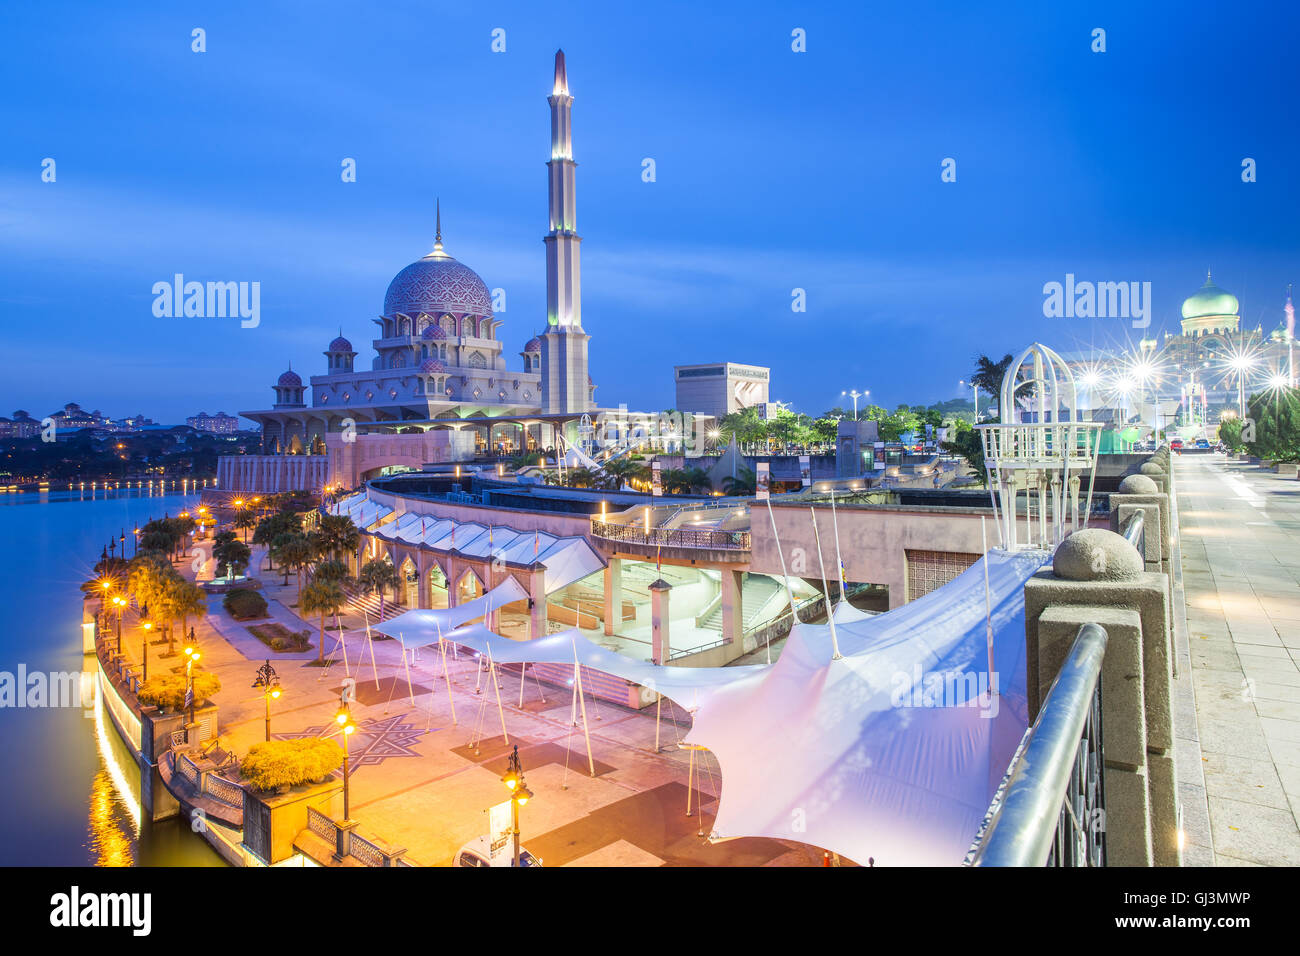 Beautiful pink Putra Mosque at dusk, Putrajaya, Malaysia on August 11, 2016. - Stock Image